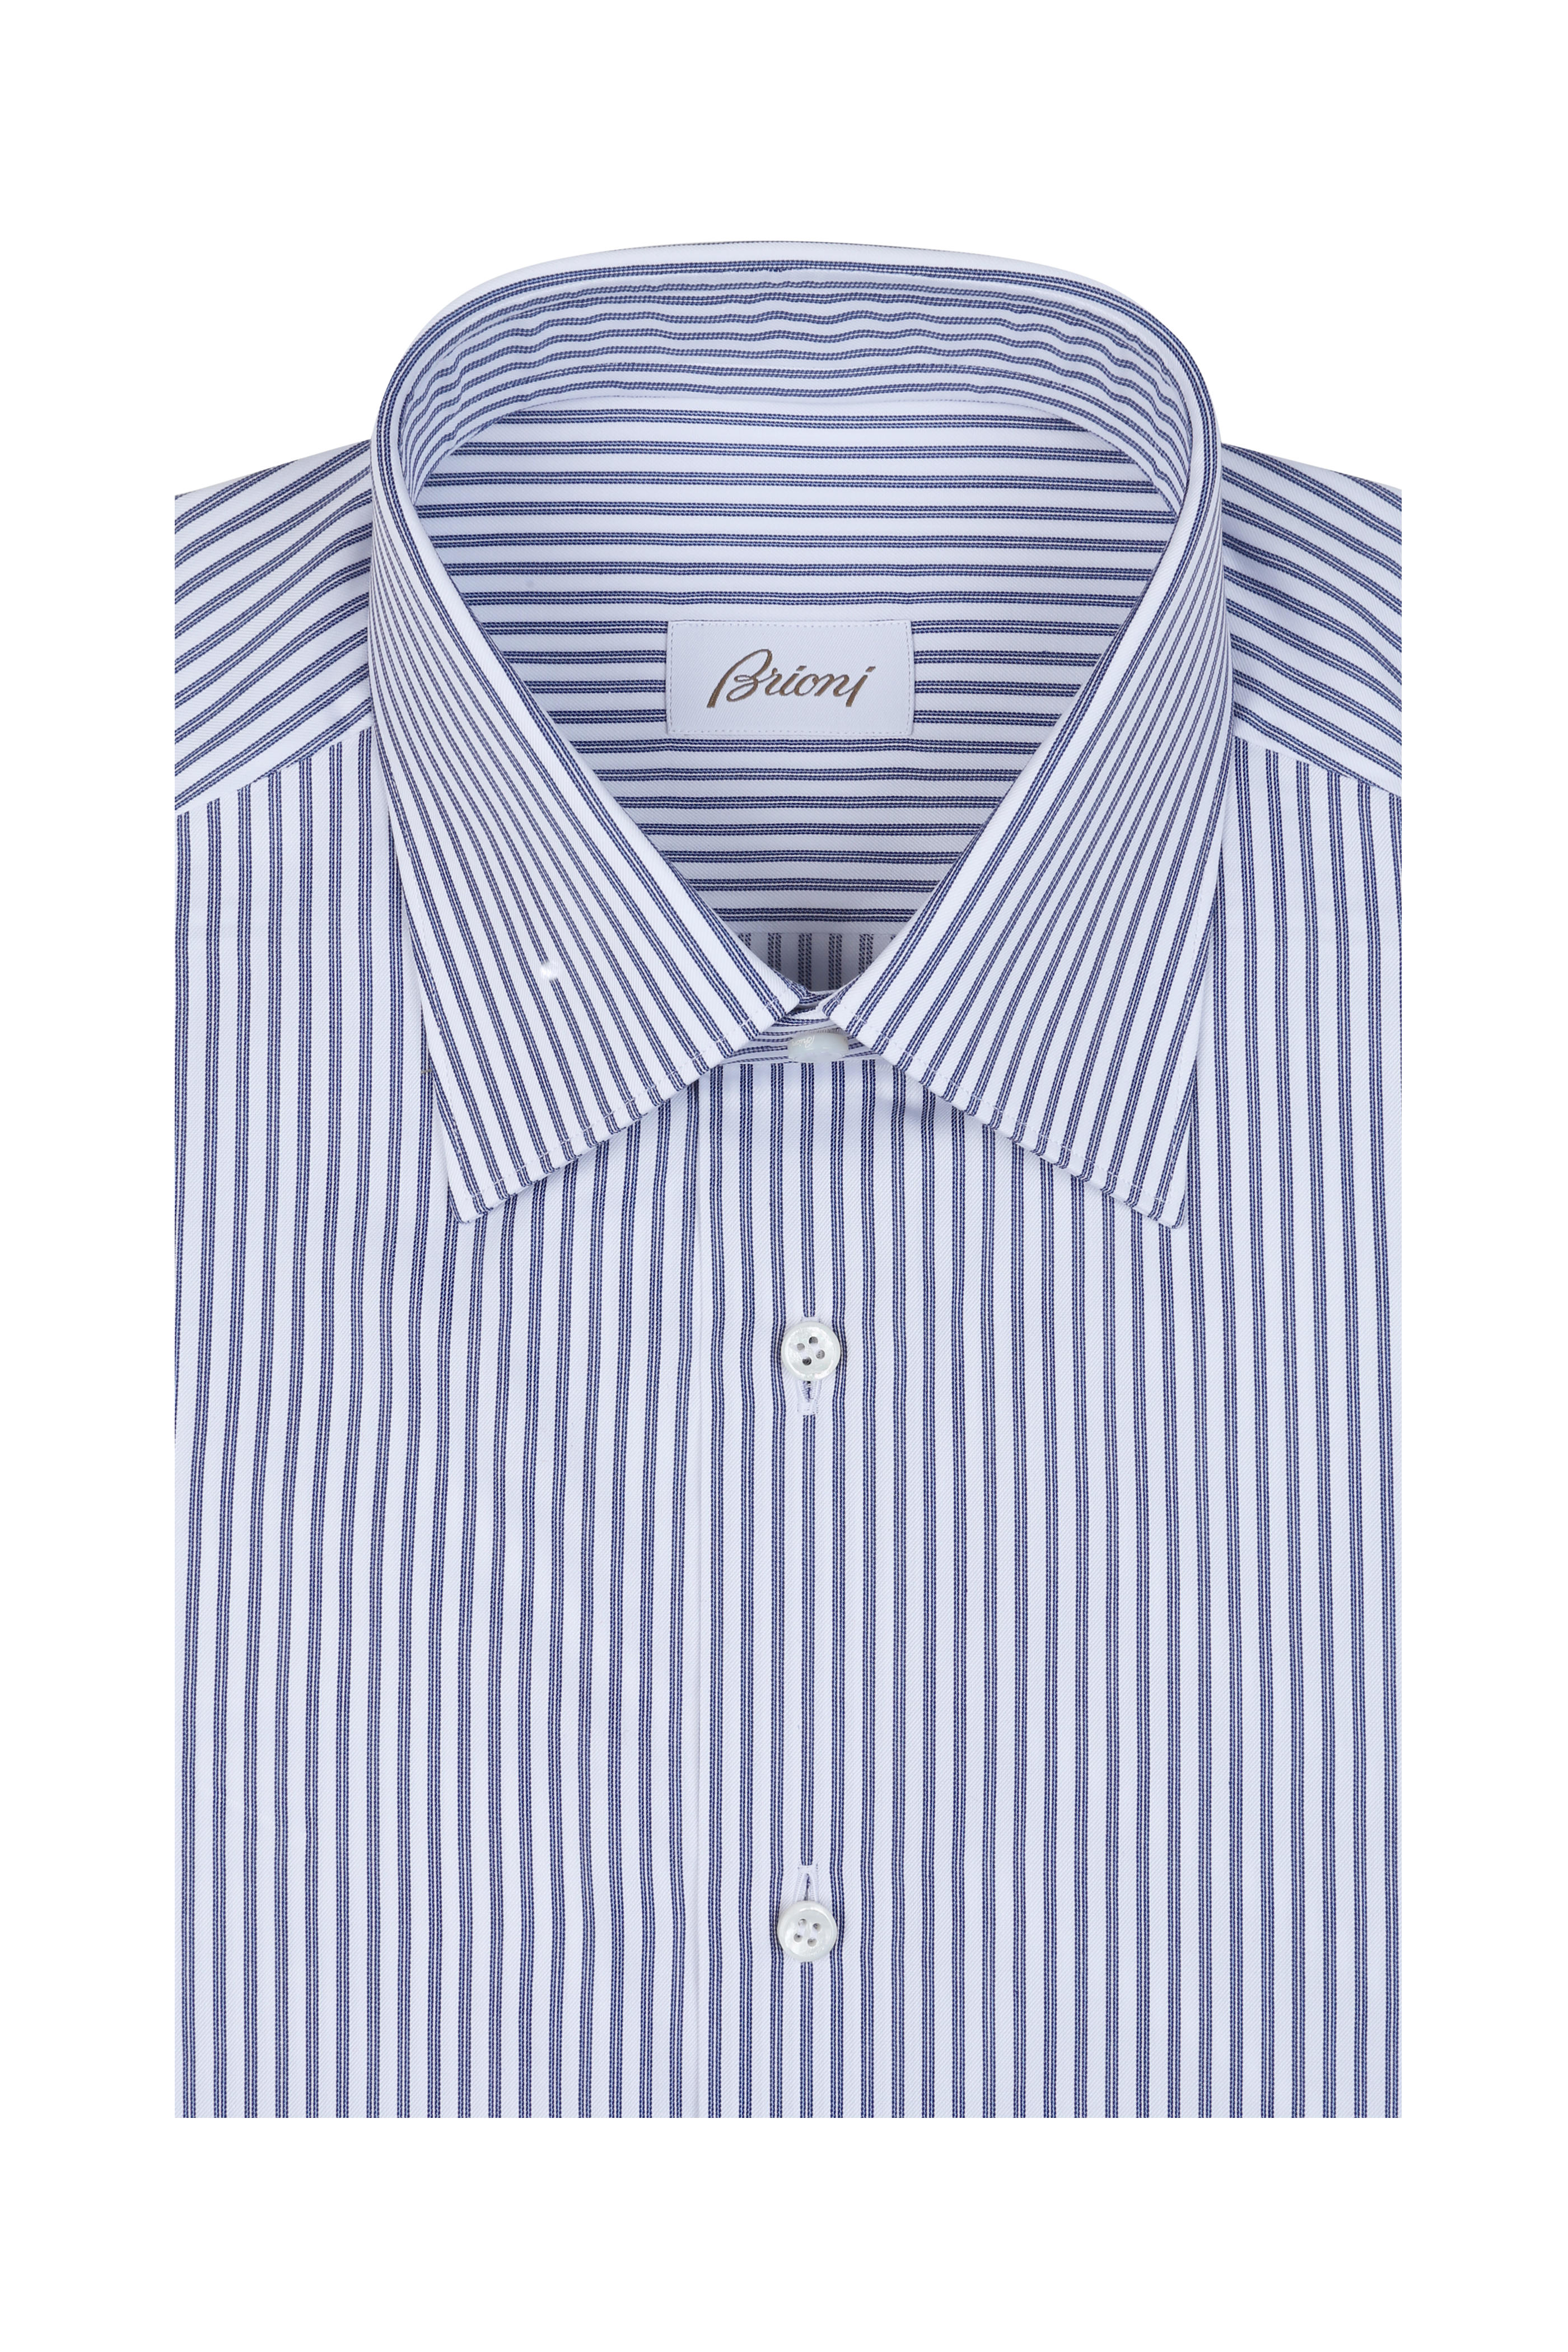 Brioni Navy Blue Striped Dress Shirt Mitchell Stores